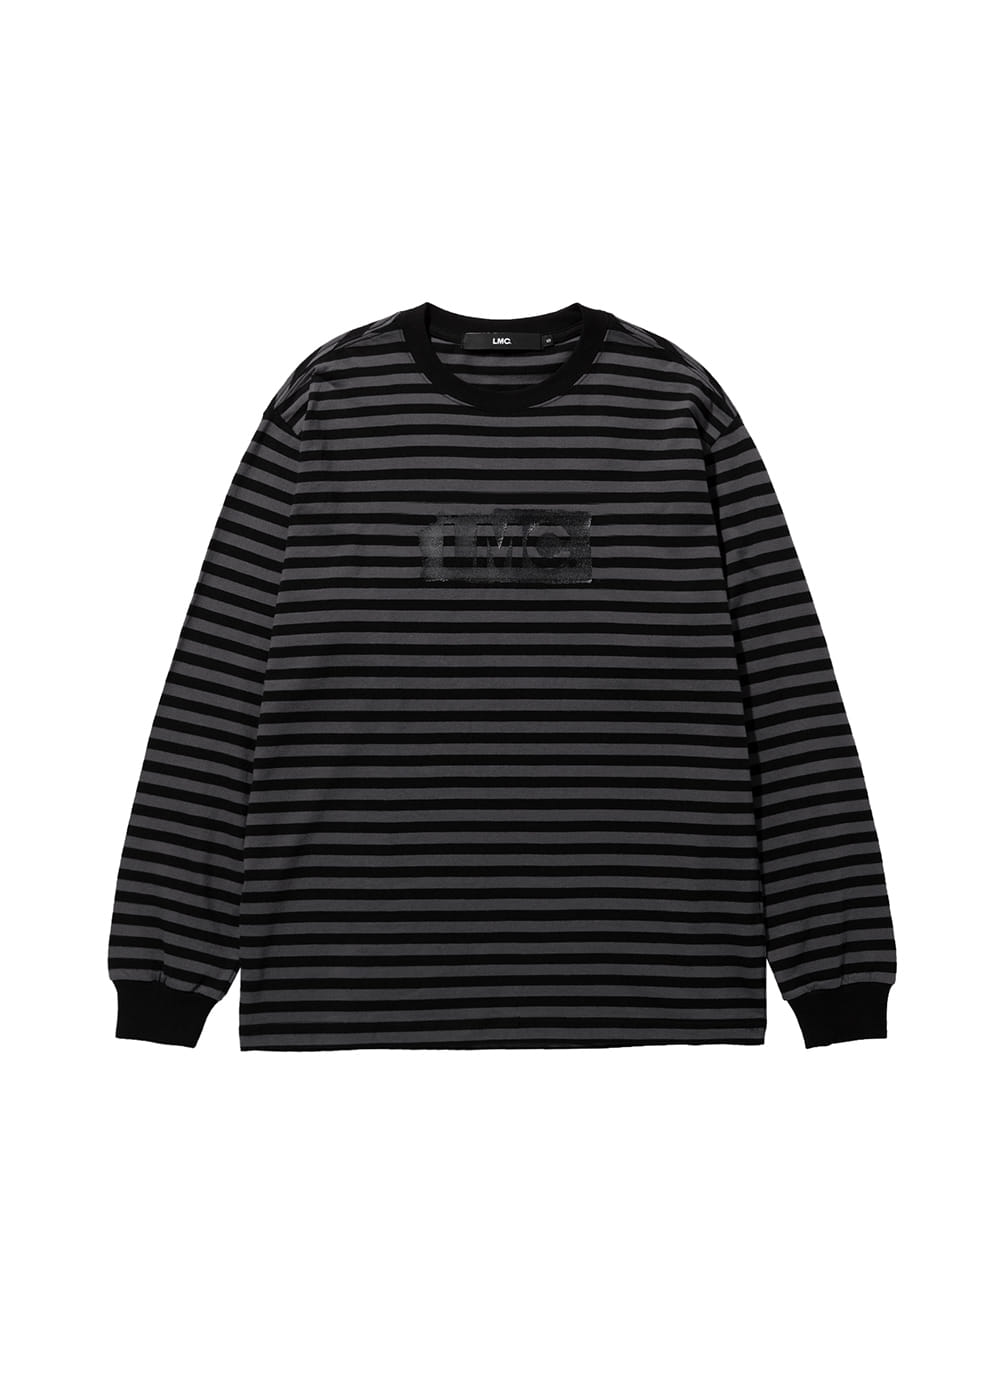 LMC PAINT BOX STRIPE LONG SLV TEE black